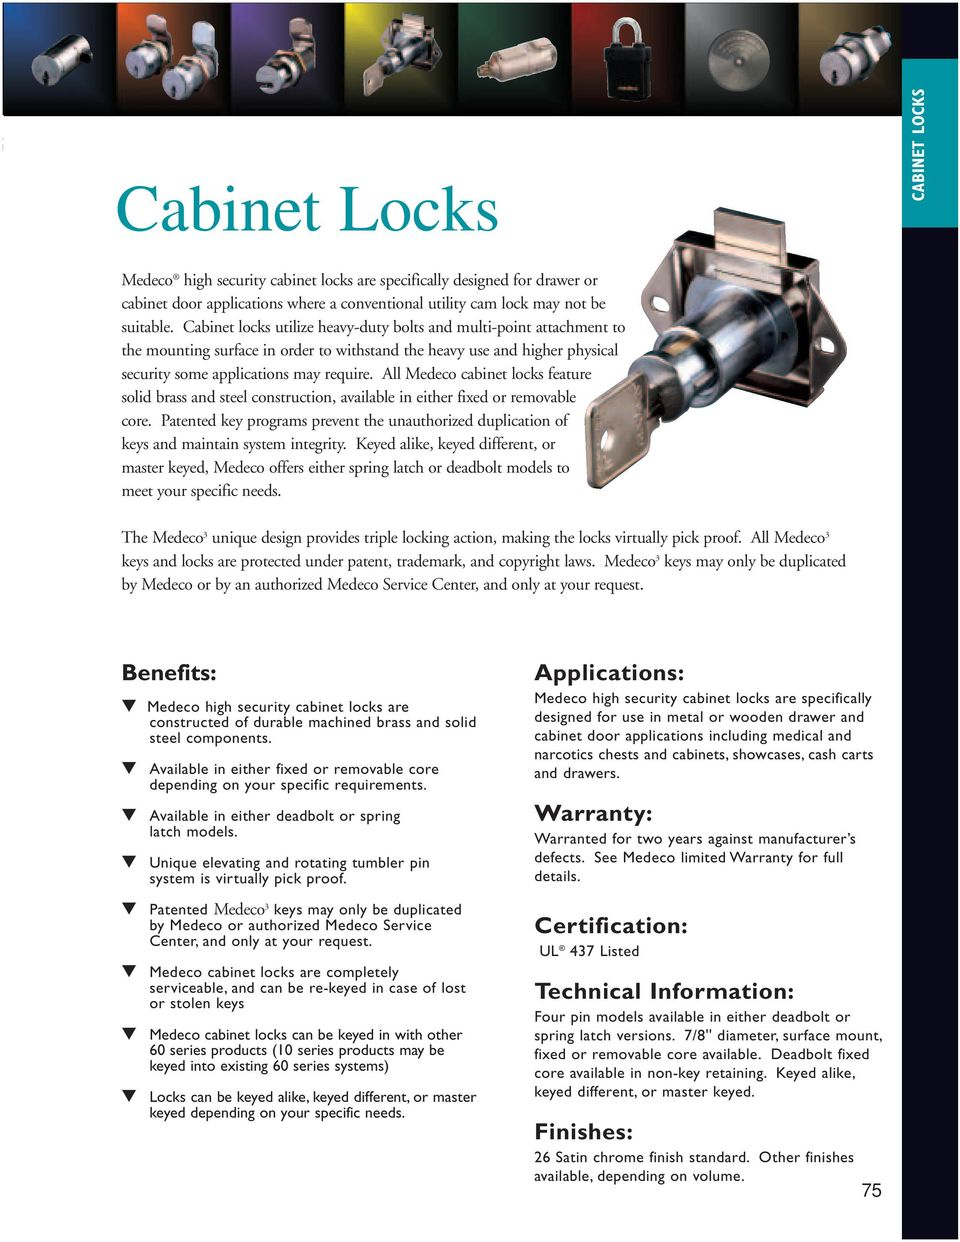 All Medeco cabinet locks feature solid brass and steel construction, available in either fixed or removable core.